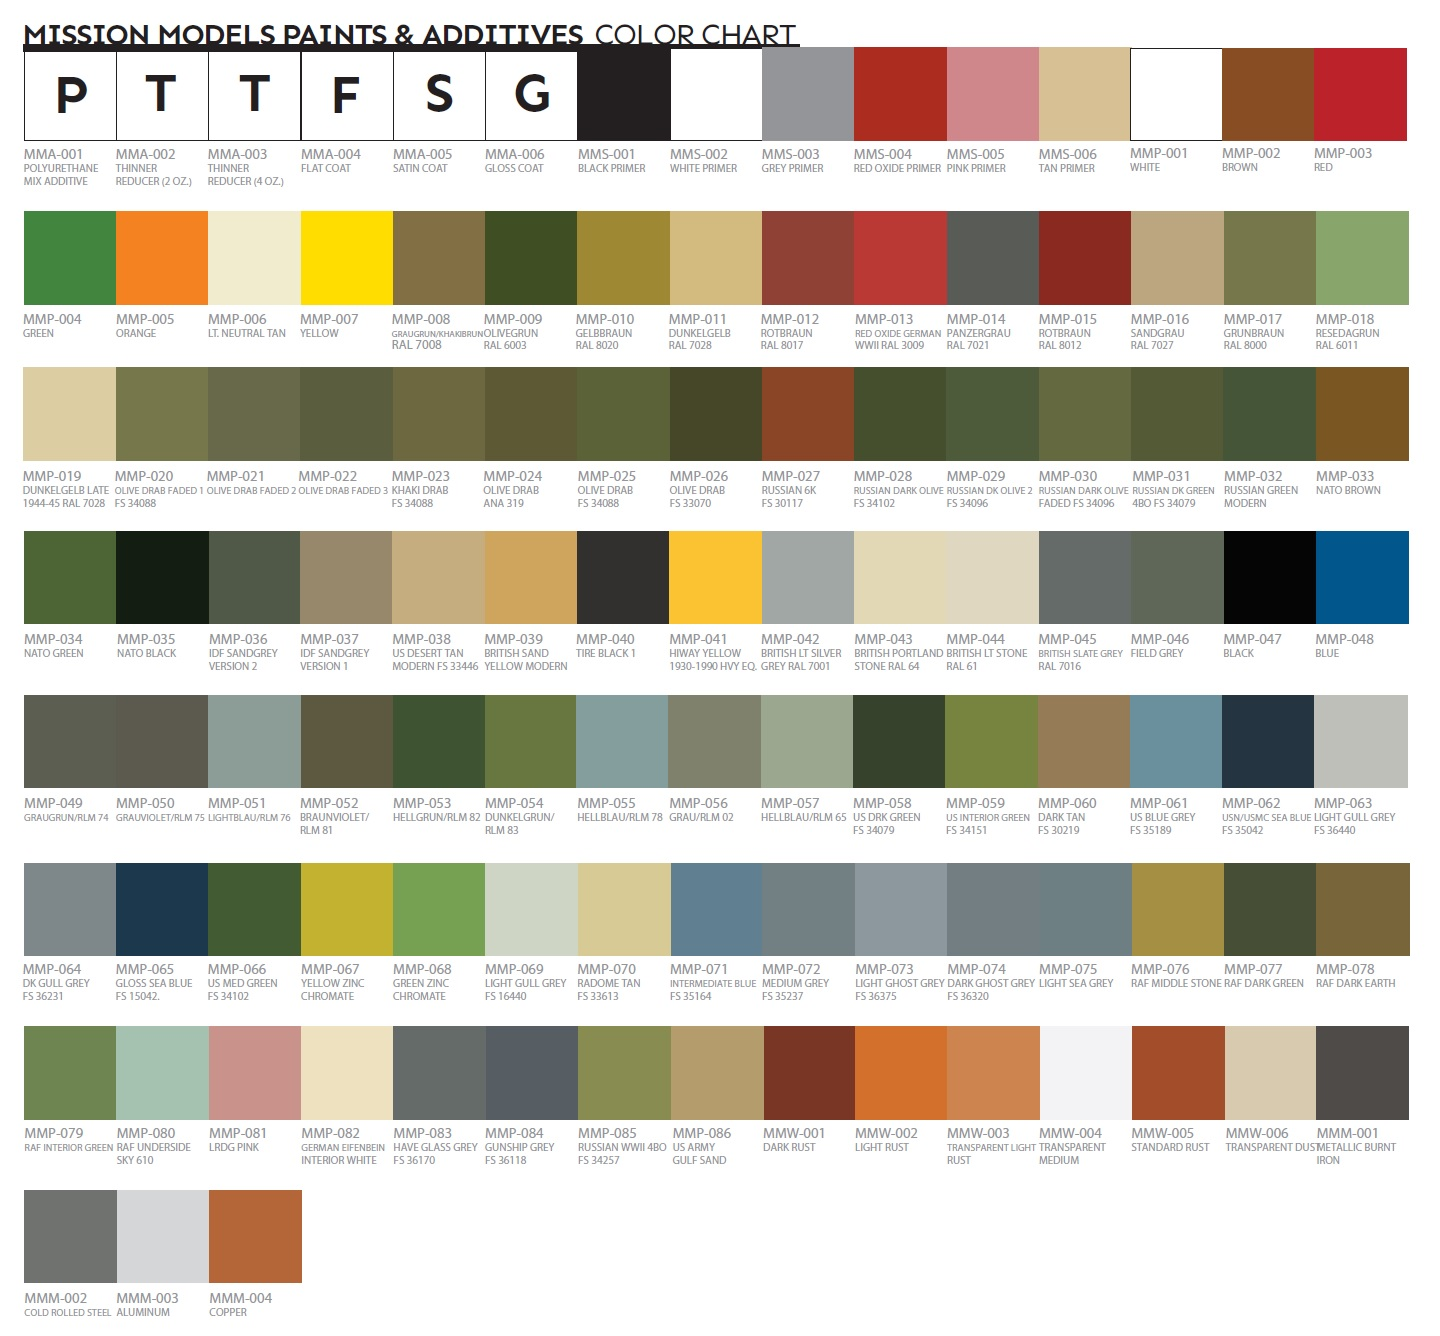 Aircraft Paint Colors Chart Bing Images